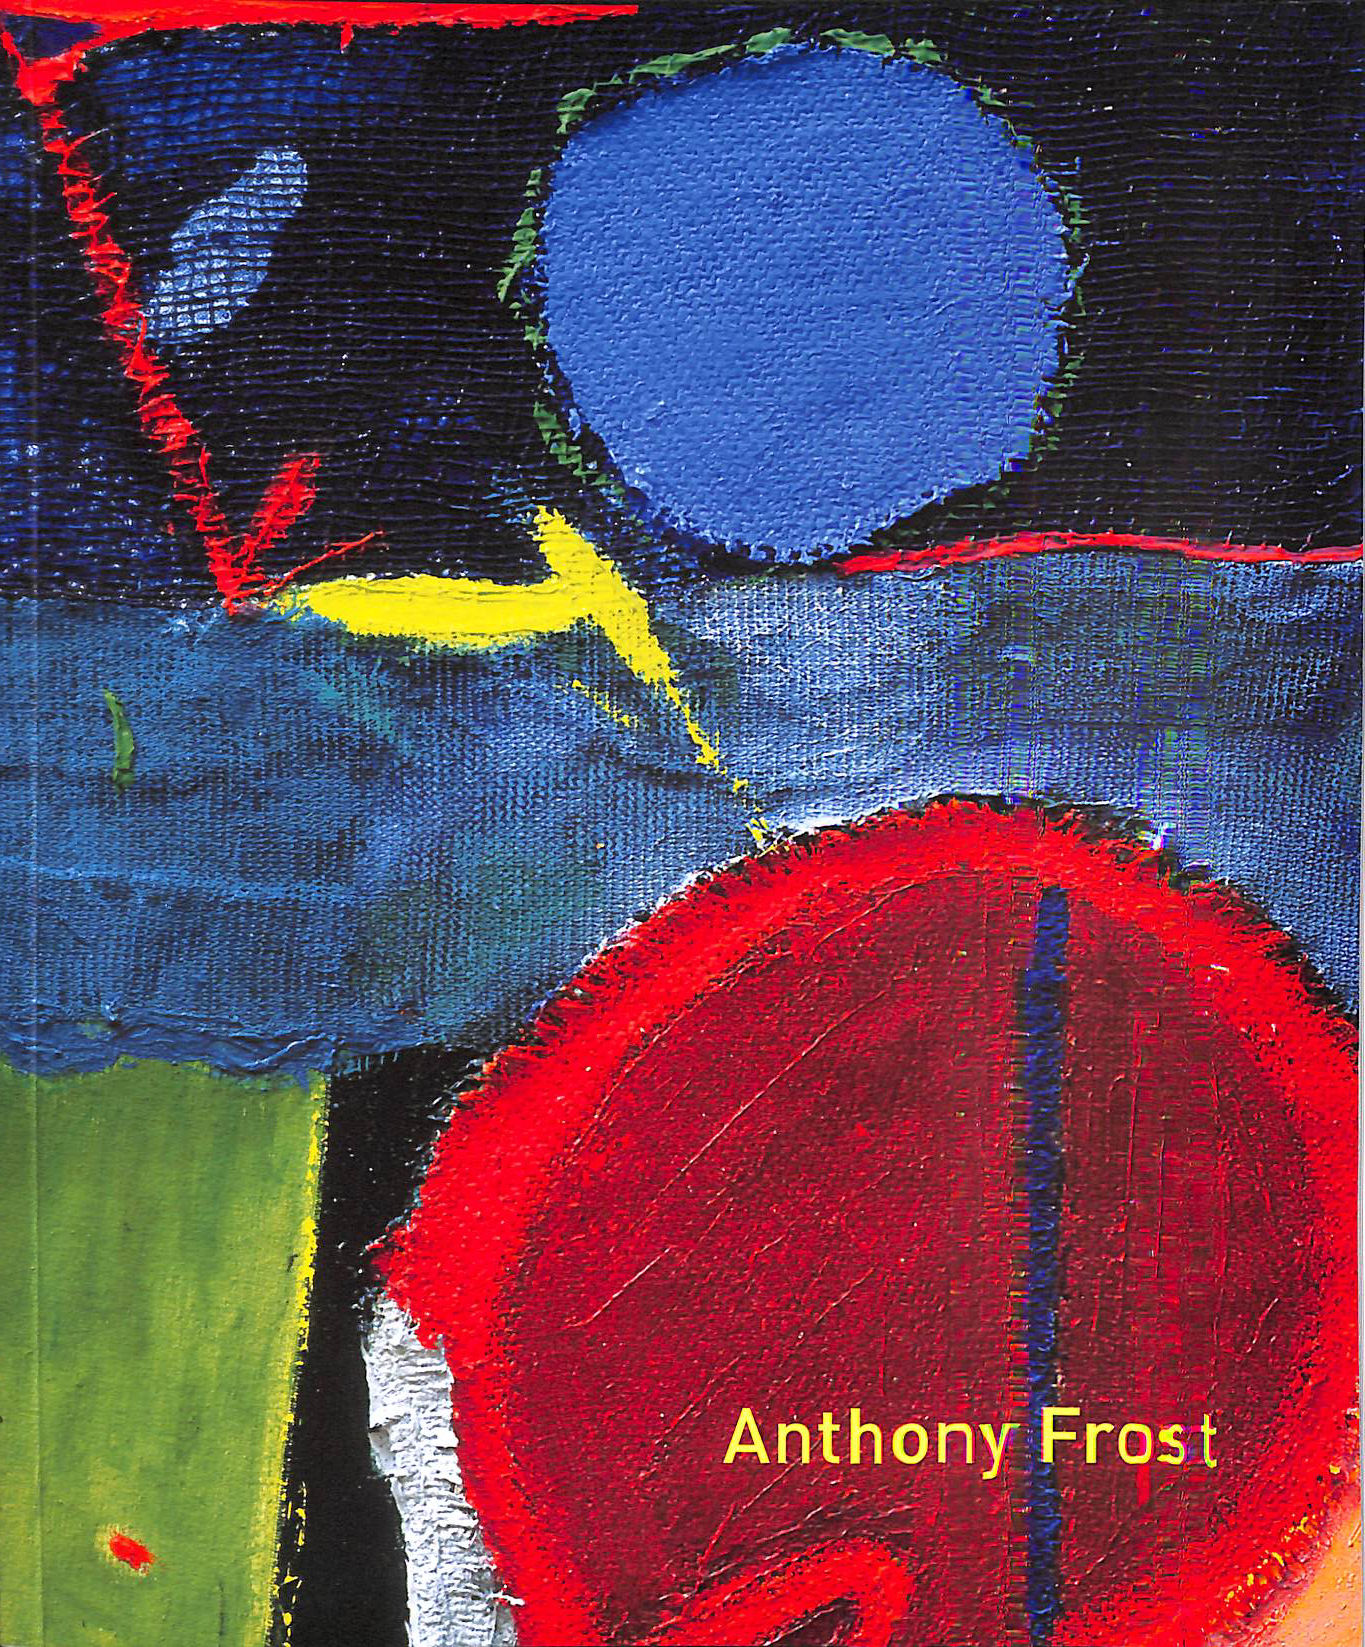 Anthony Frost, Magnetic Fields, von JOEL, Mike (Essay)